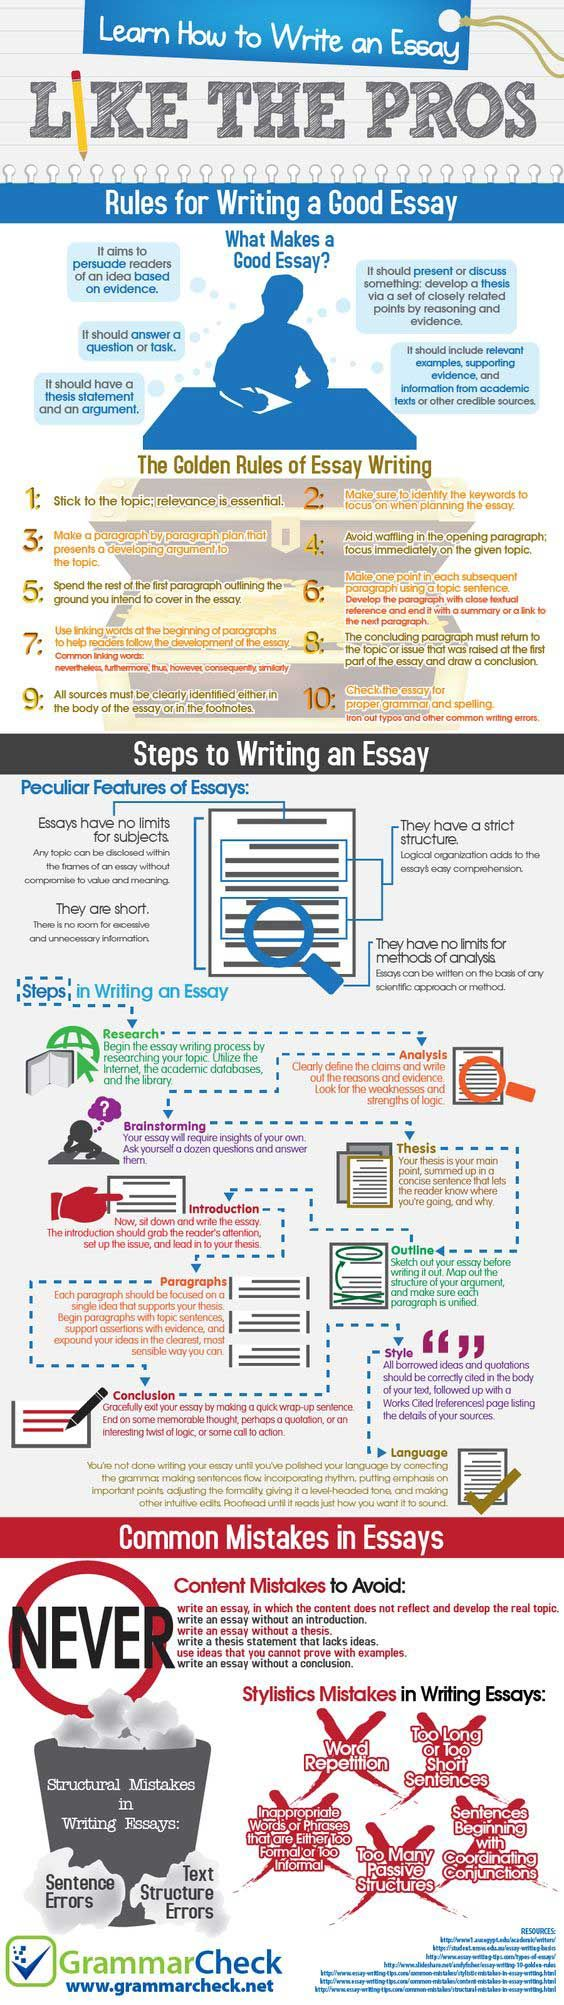 best essays uk best essays uk get help from custom college essay     Honesty Is The Best Policy Essay     Words Cryo Honesty Is The Best Policy  Essay